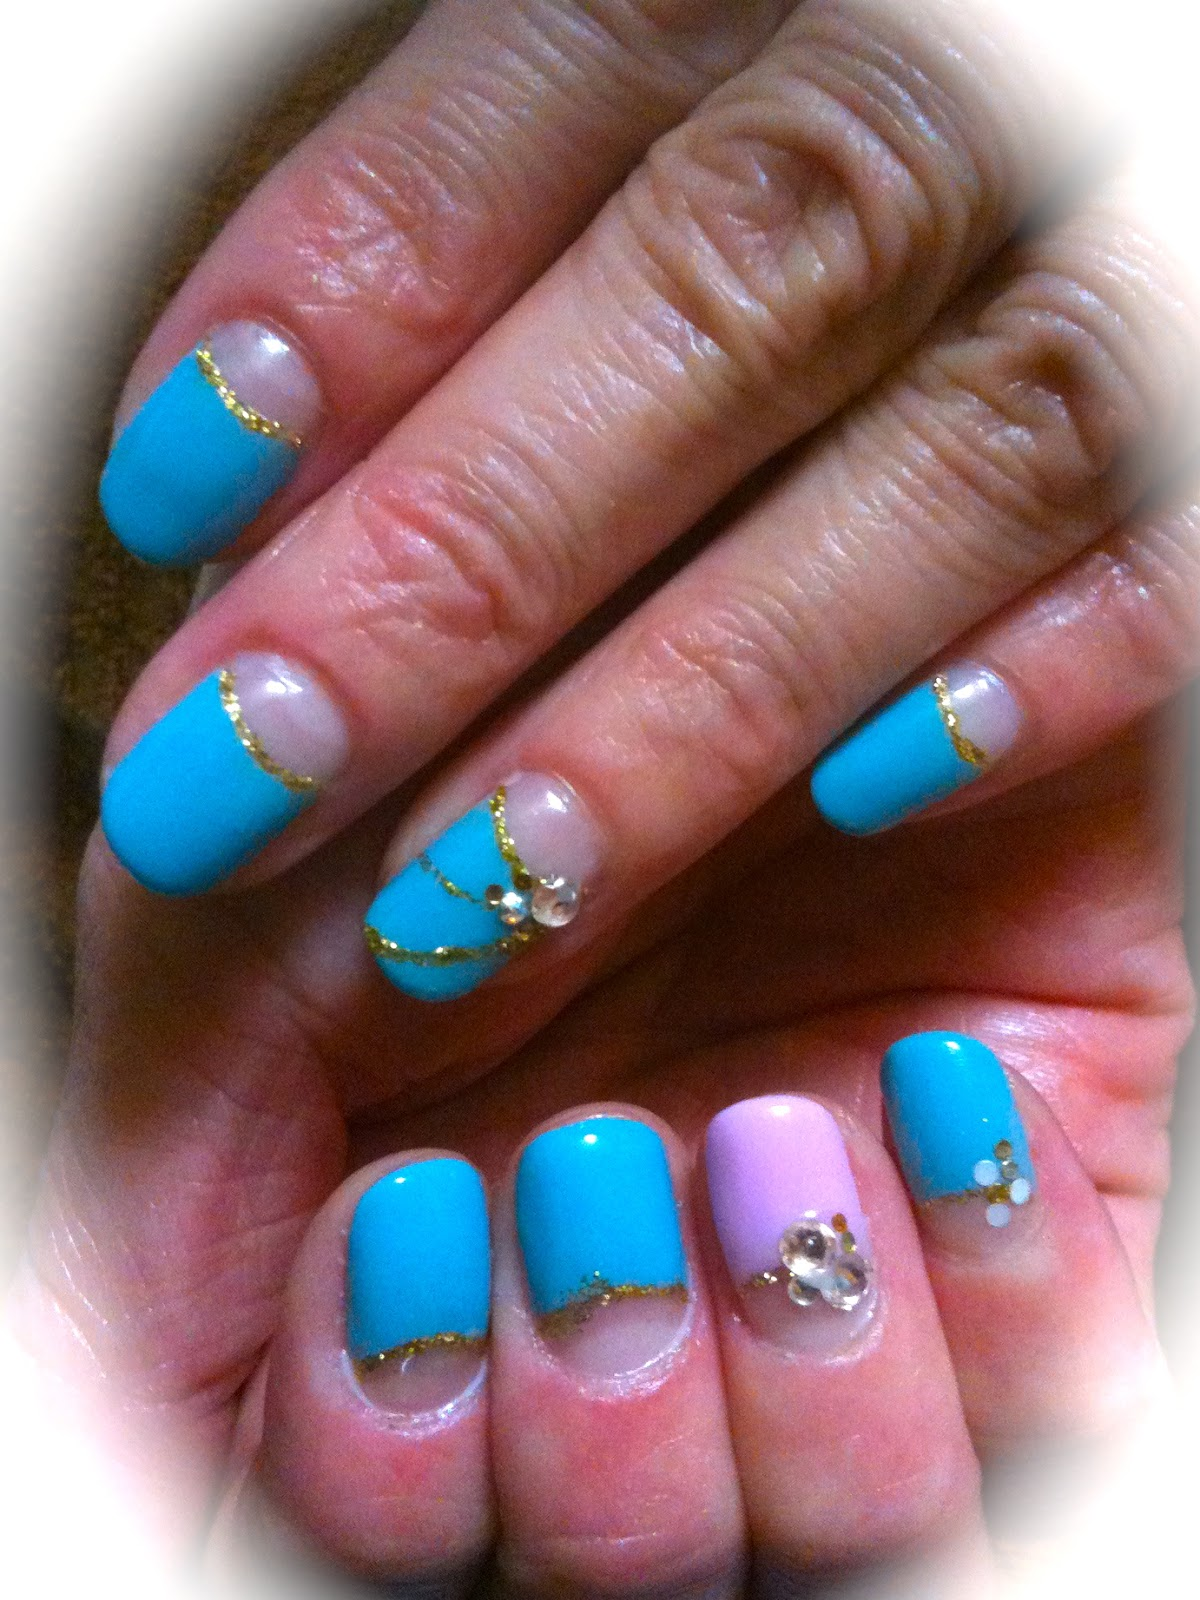 Gel nails in my area - New Expression Nails